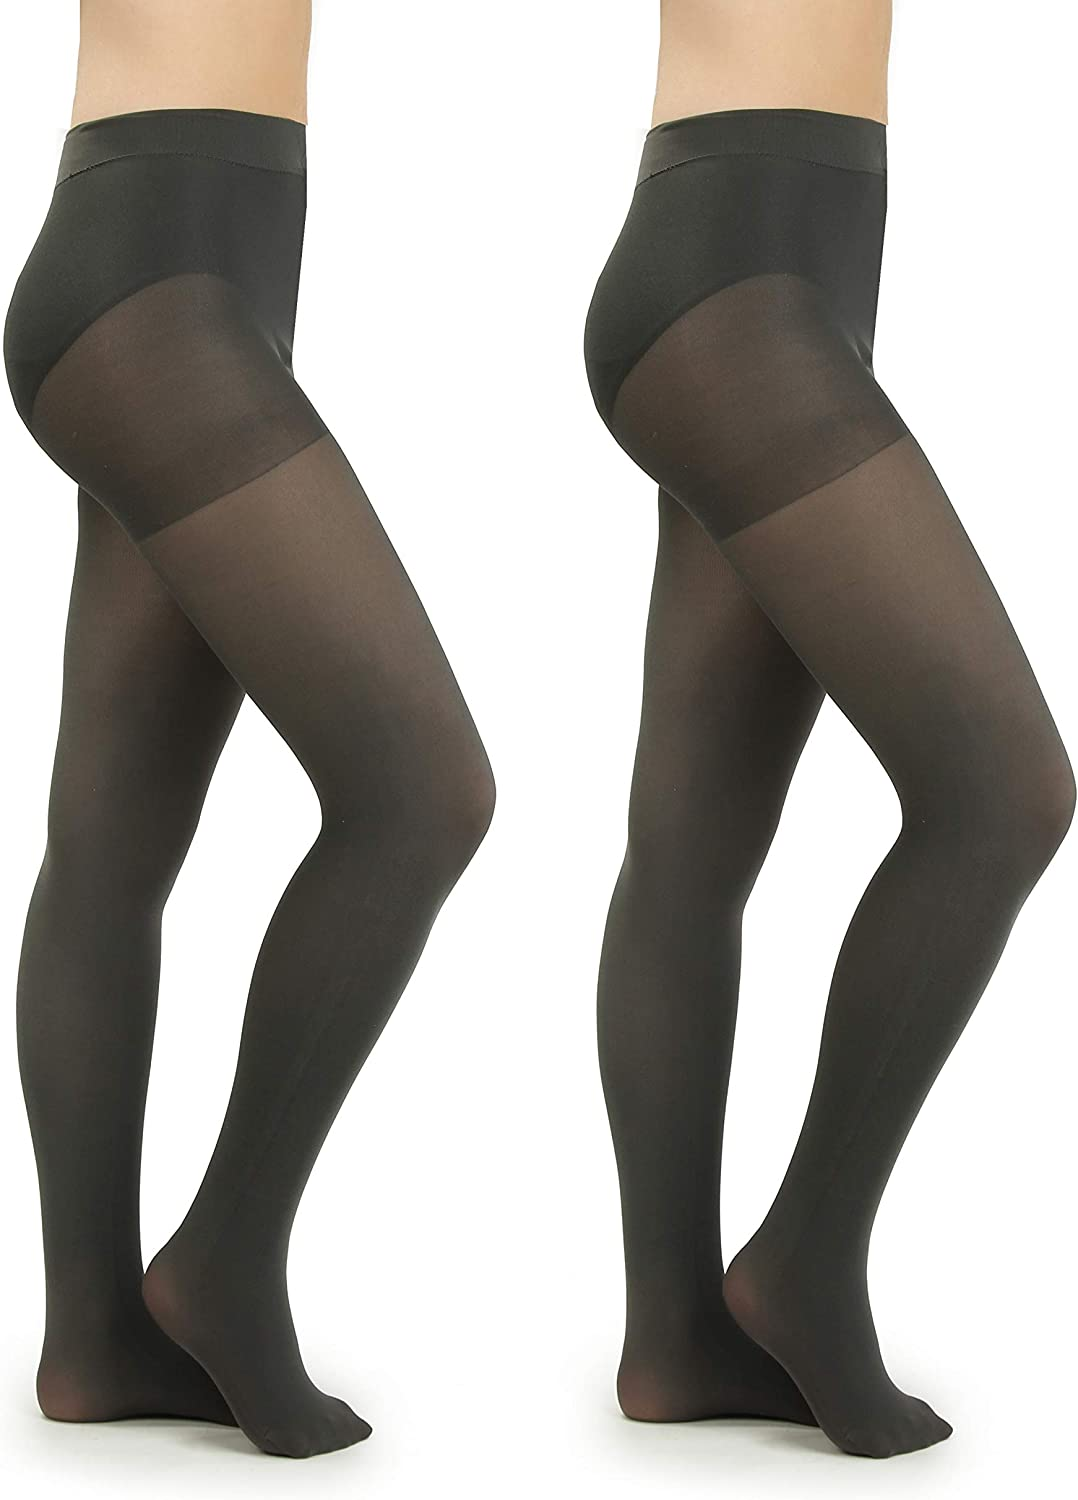 Silky Toes Women's Microfiber Opaque Tights with Control Top 80 Denier- 2 Pairs